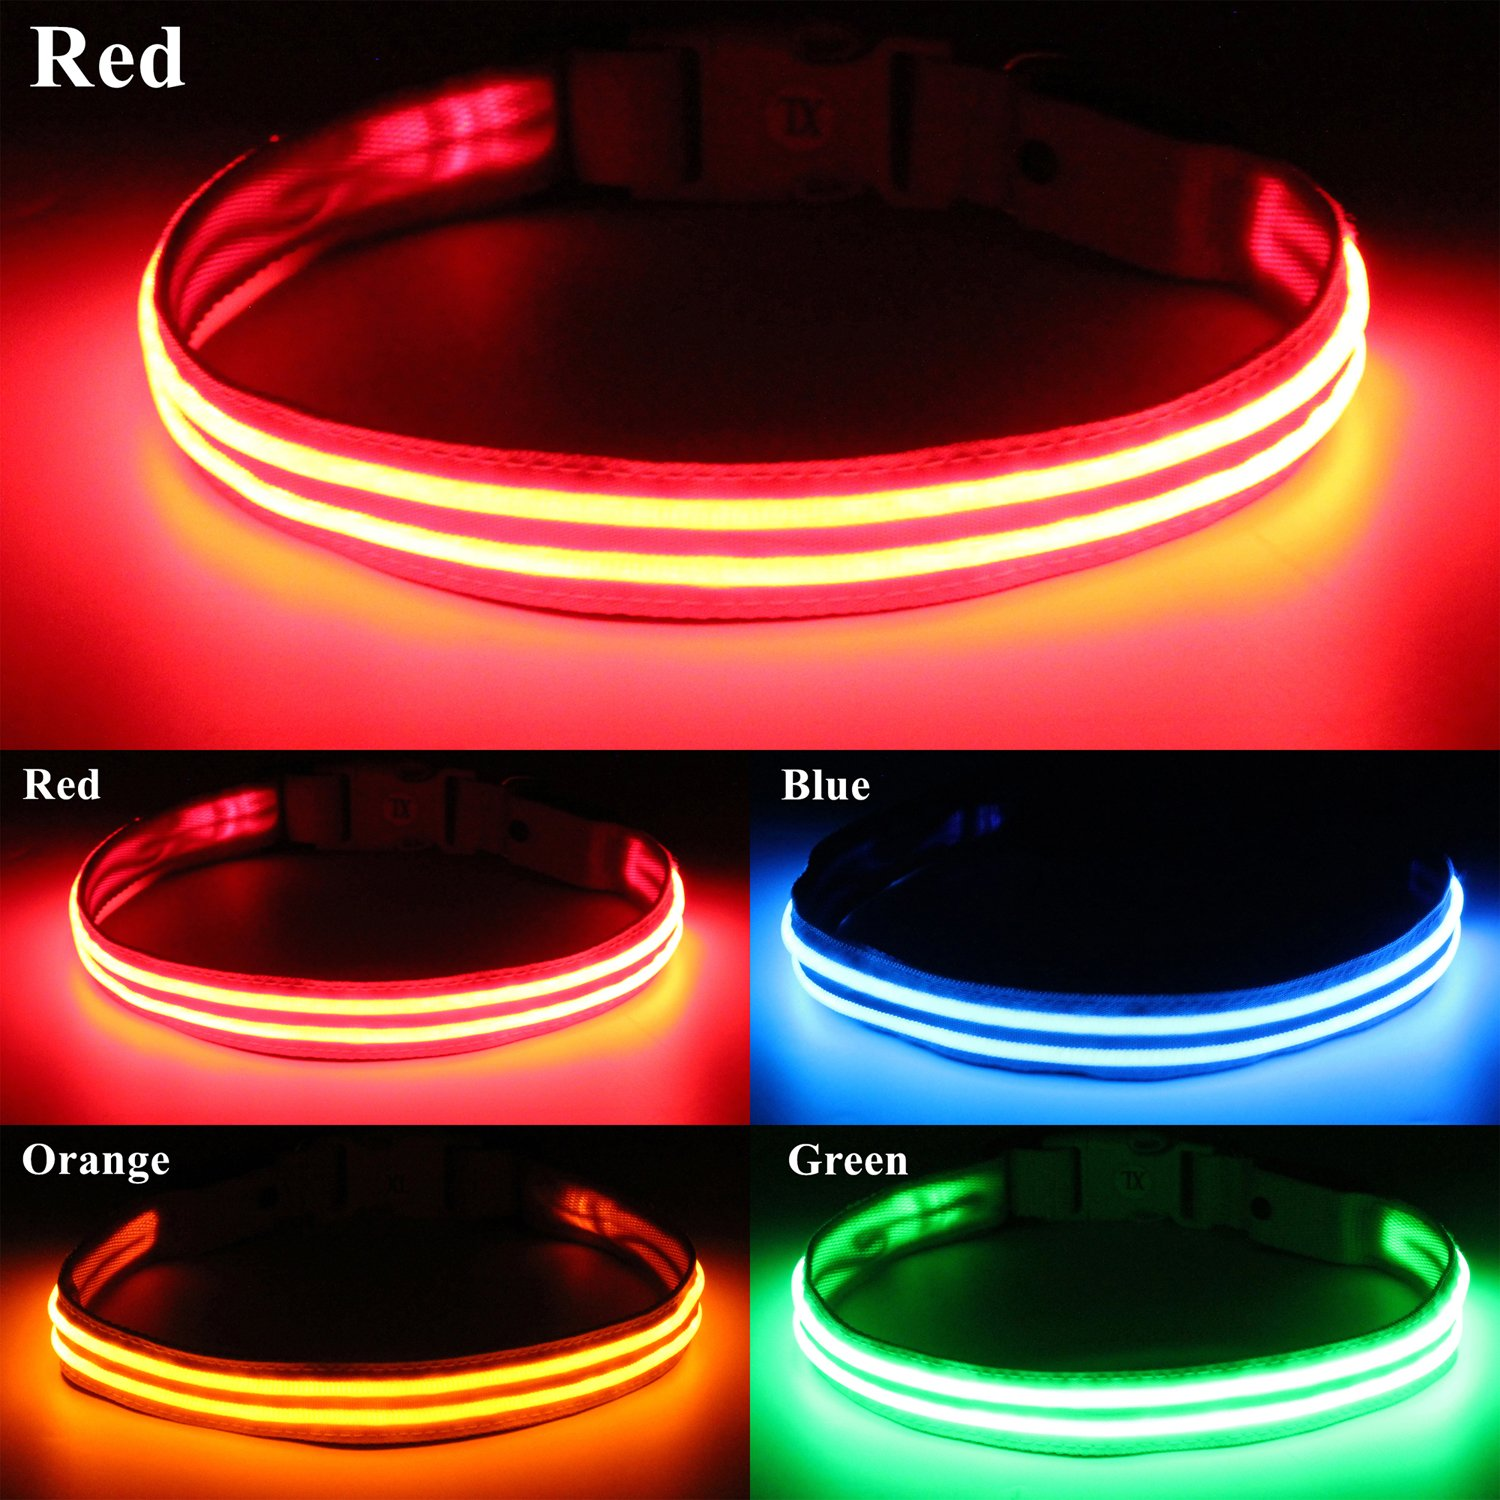 bcac glowing up led light squeaker red poochlight collar flashing dog products lava